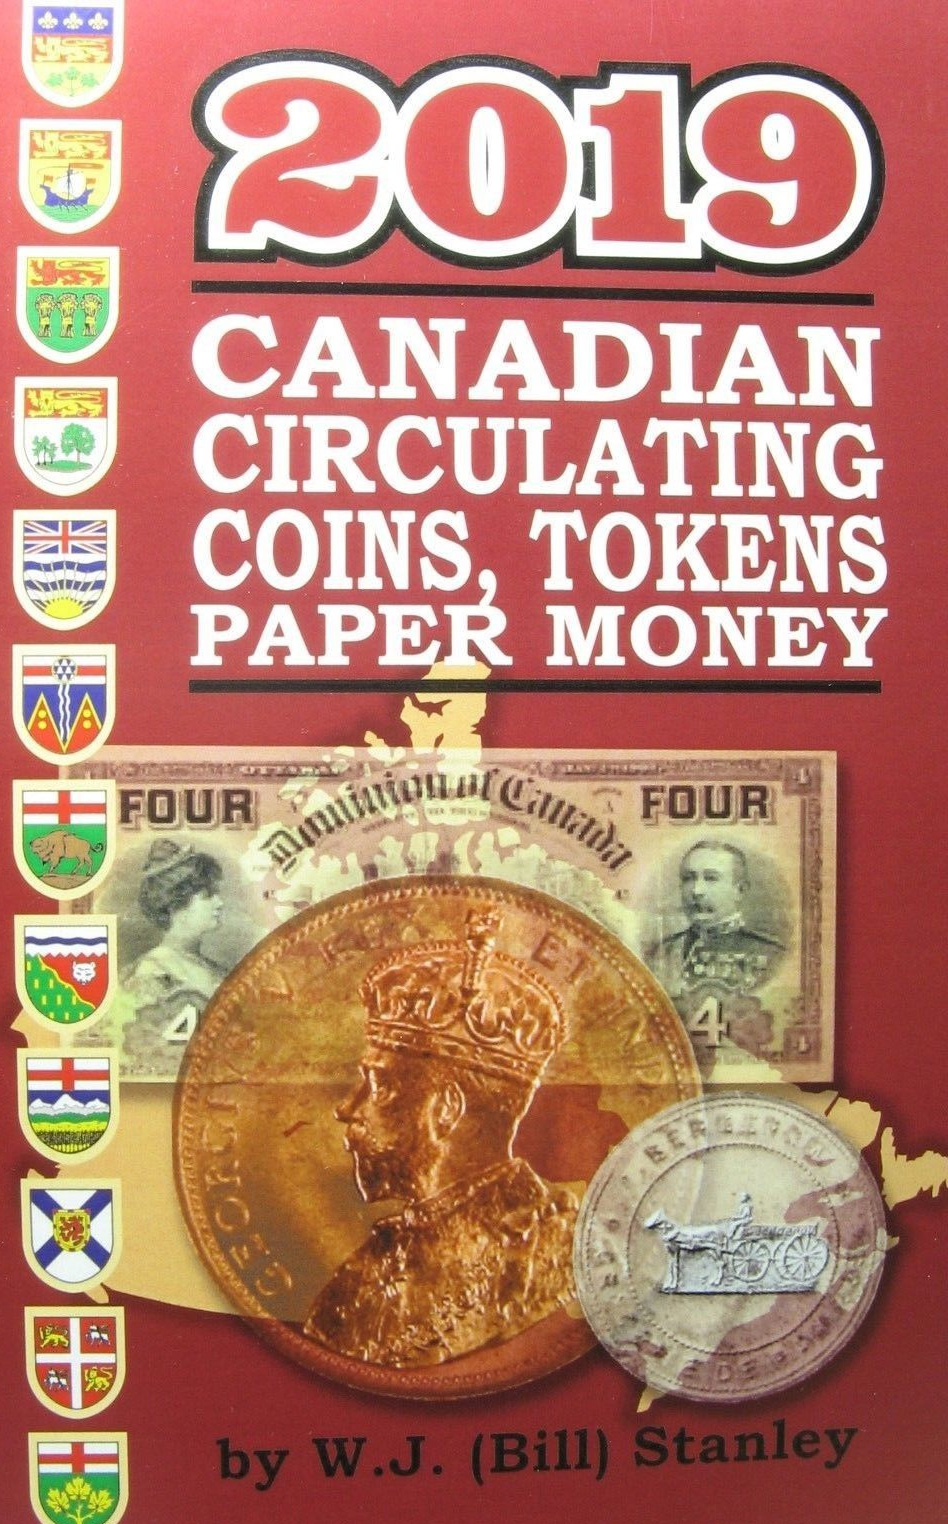 2019 Canadian Circulating Coins, Tokens Paper Money